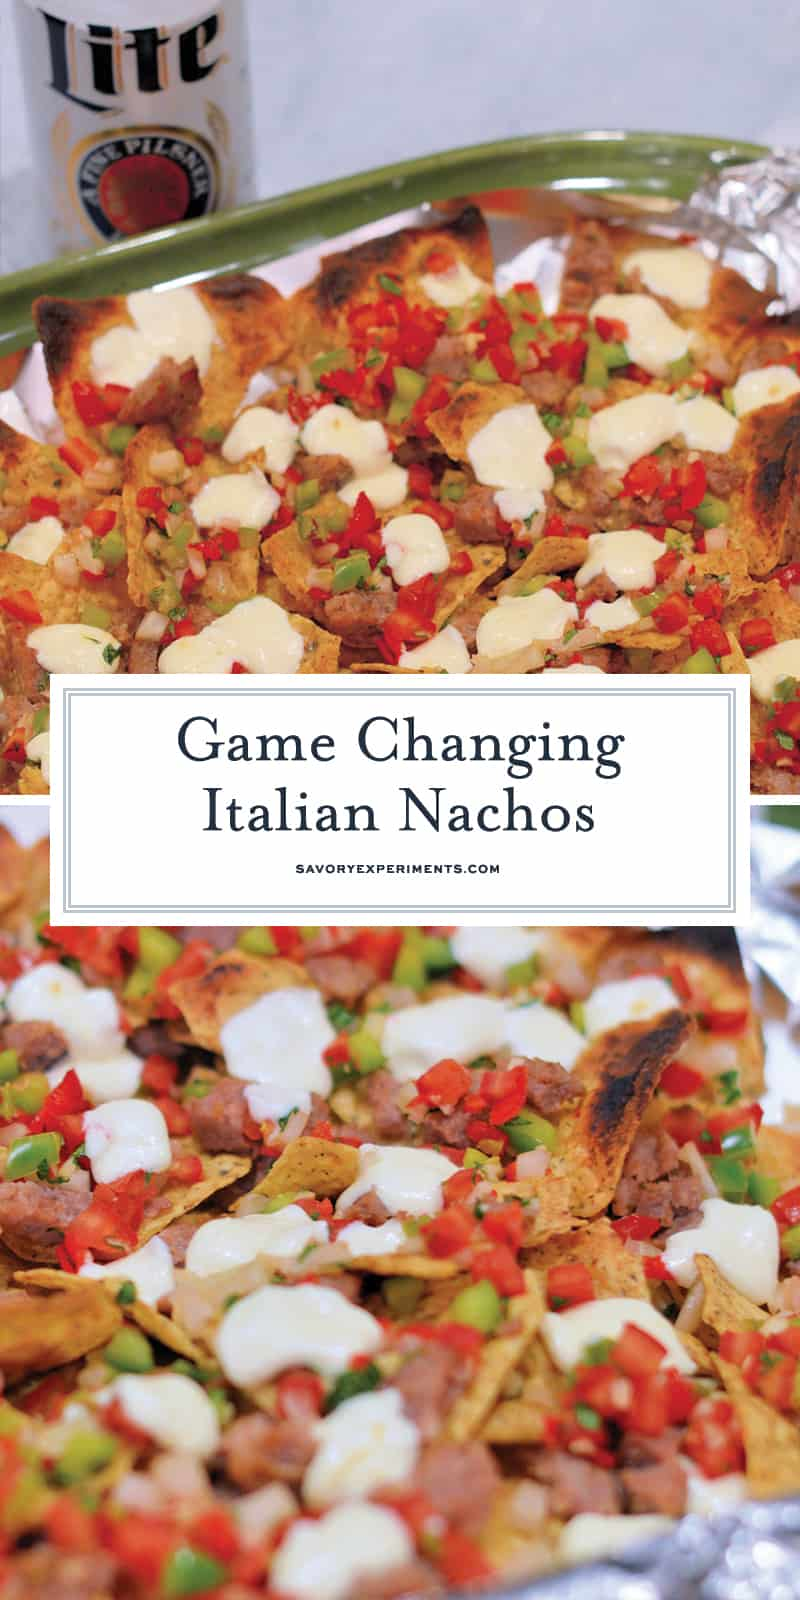 Italian Nachos are a new twist on an old favorite. Crunchy, spicy, and loaded with toppings, these are about as addictive as they come. #italiannachos #nachos www.savoryexperiments.com